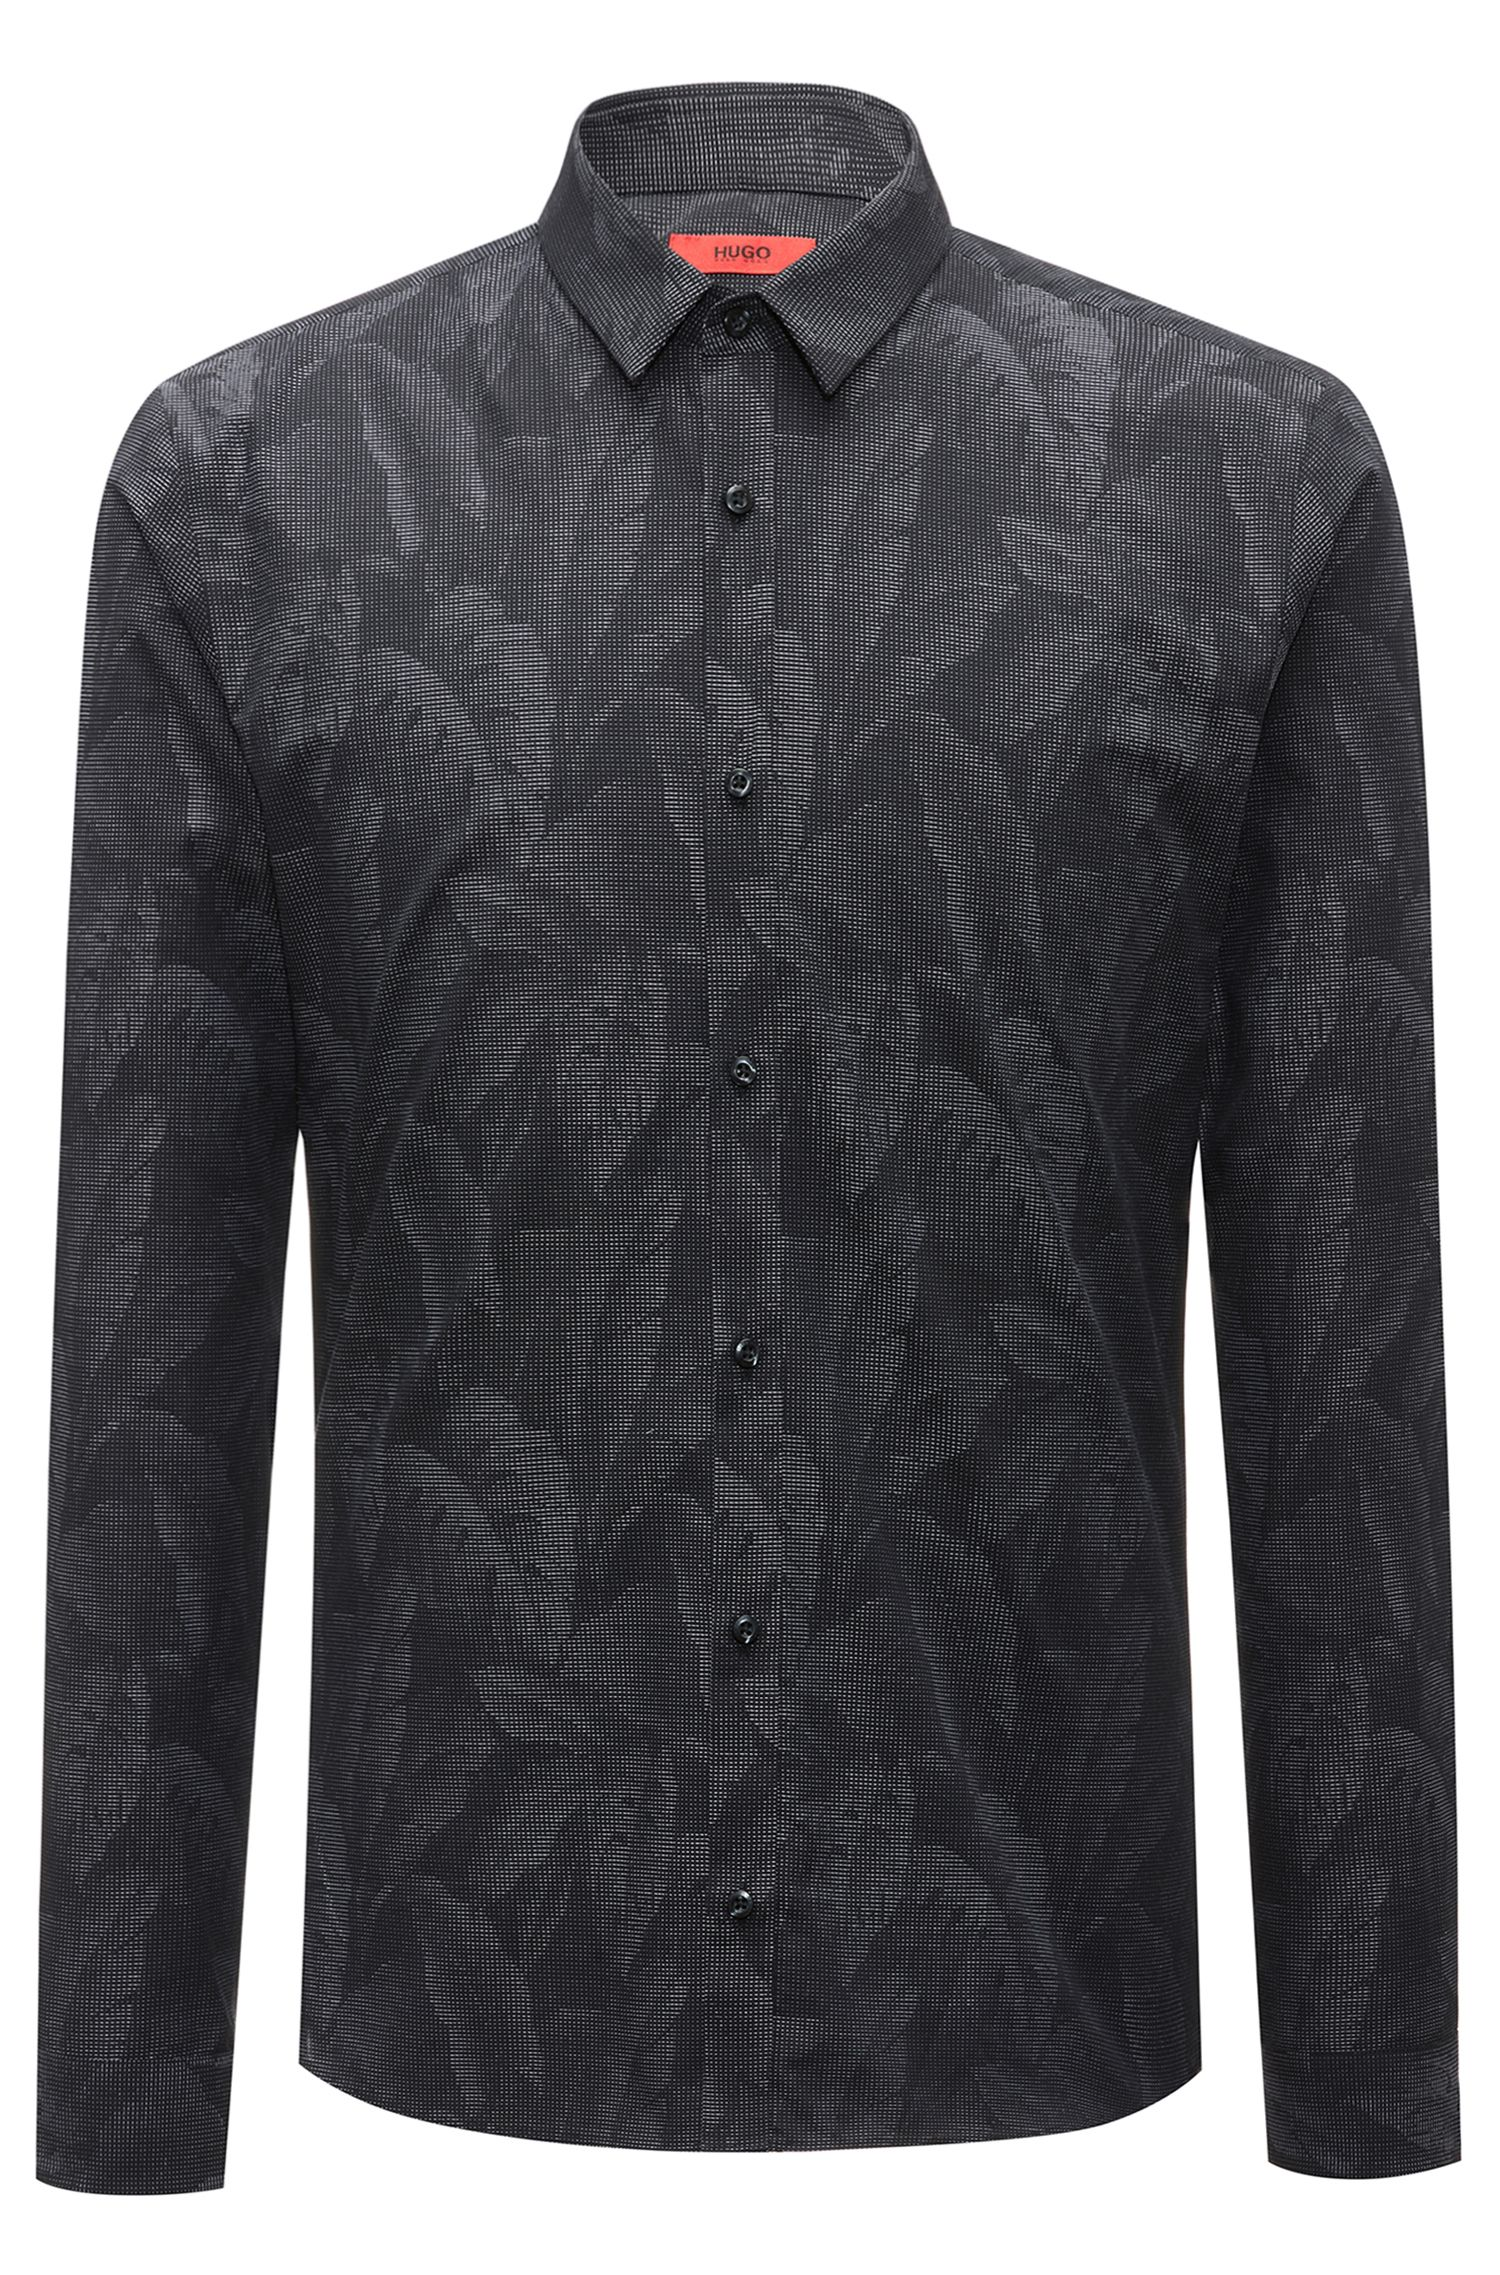 Slim-fit cotton shirt with jacquard banana-leaf pattern